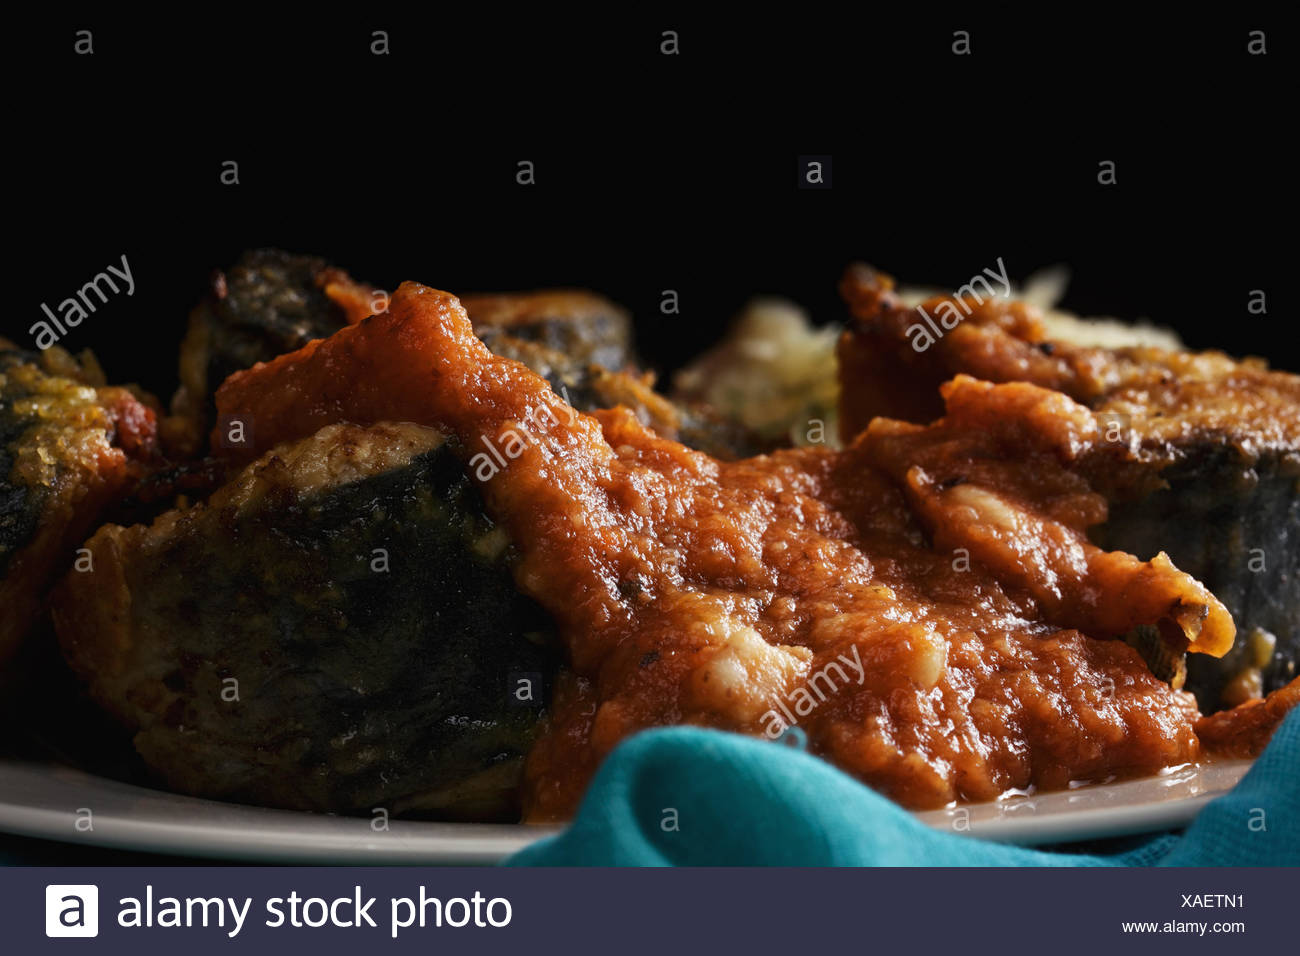 Fried mackerel in darkness closeup - Stock Image